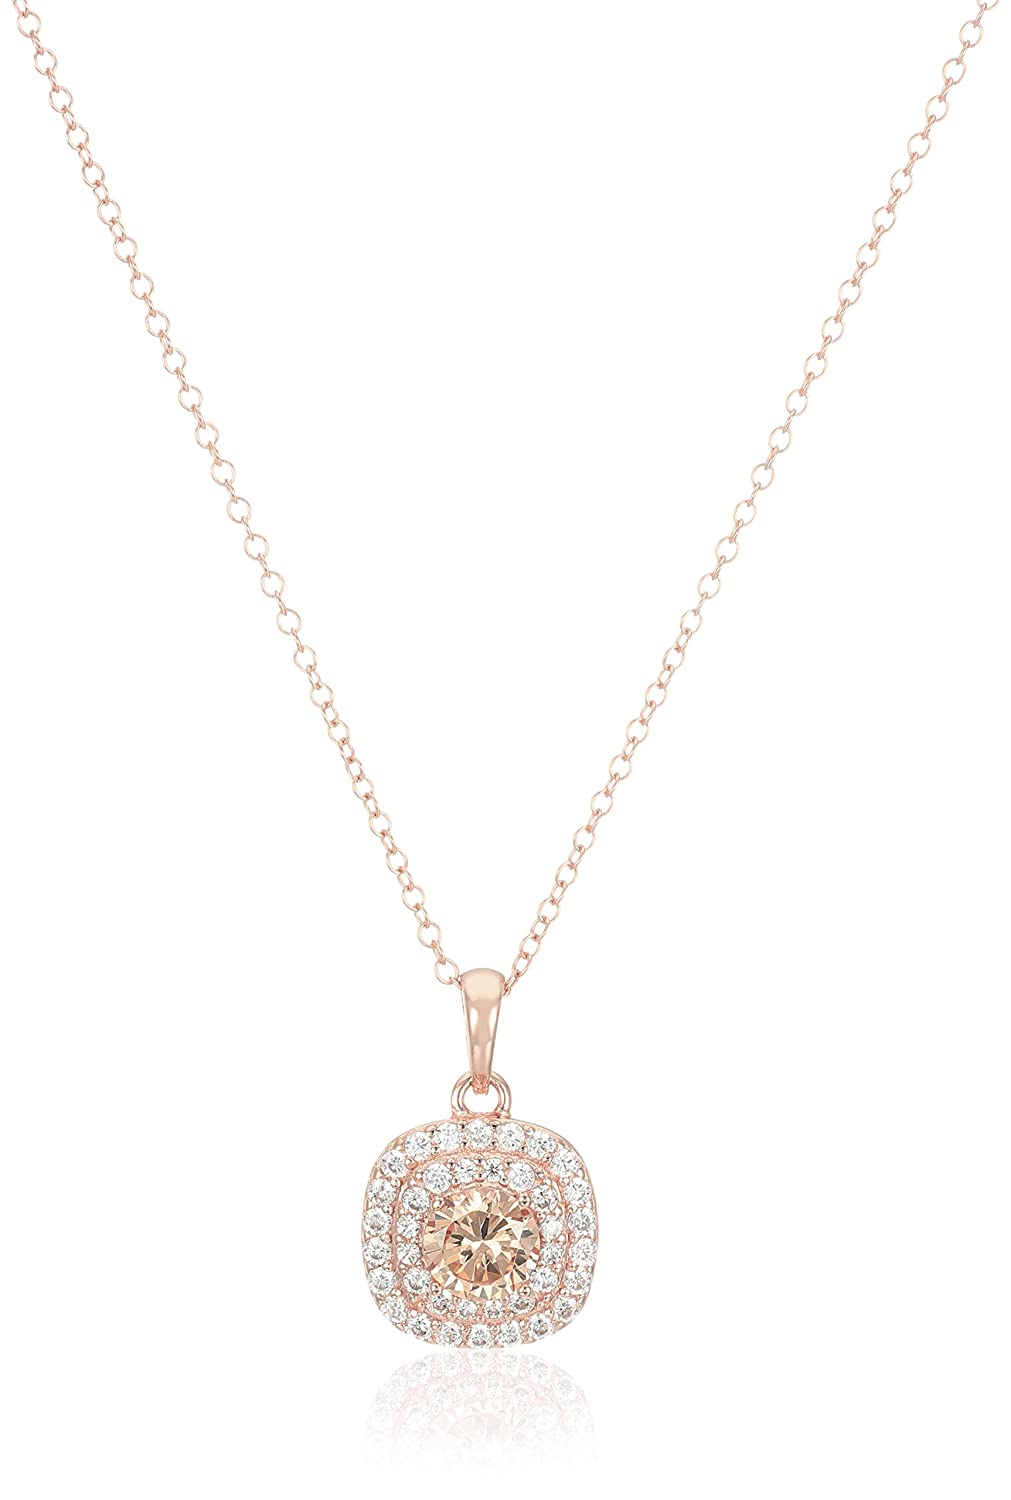 b52d794da6dd 14k Rose Gold Plated Sterling Silver Champagne Cubic Zirconia and White  Cubic Zirconia Double Halo Pendant